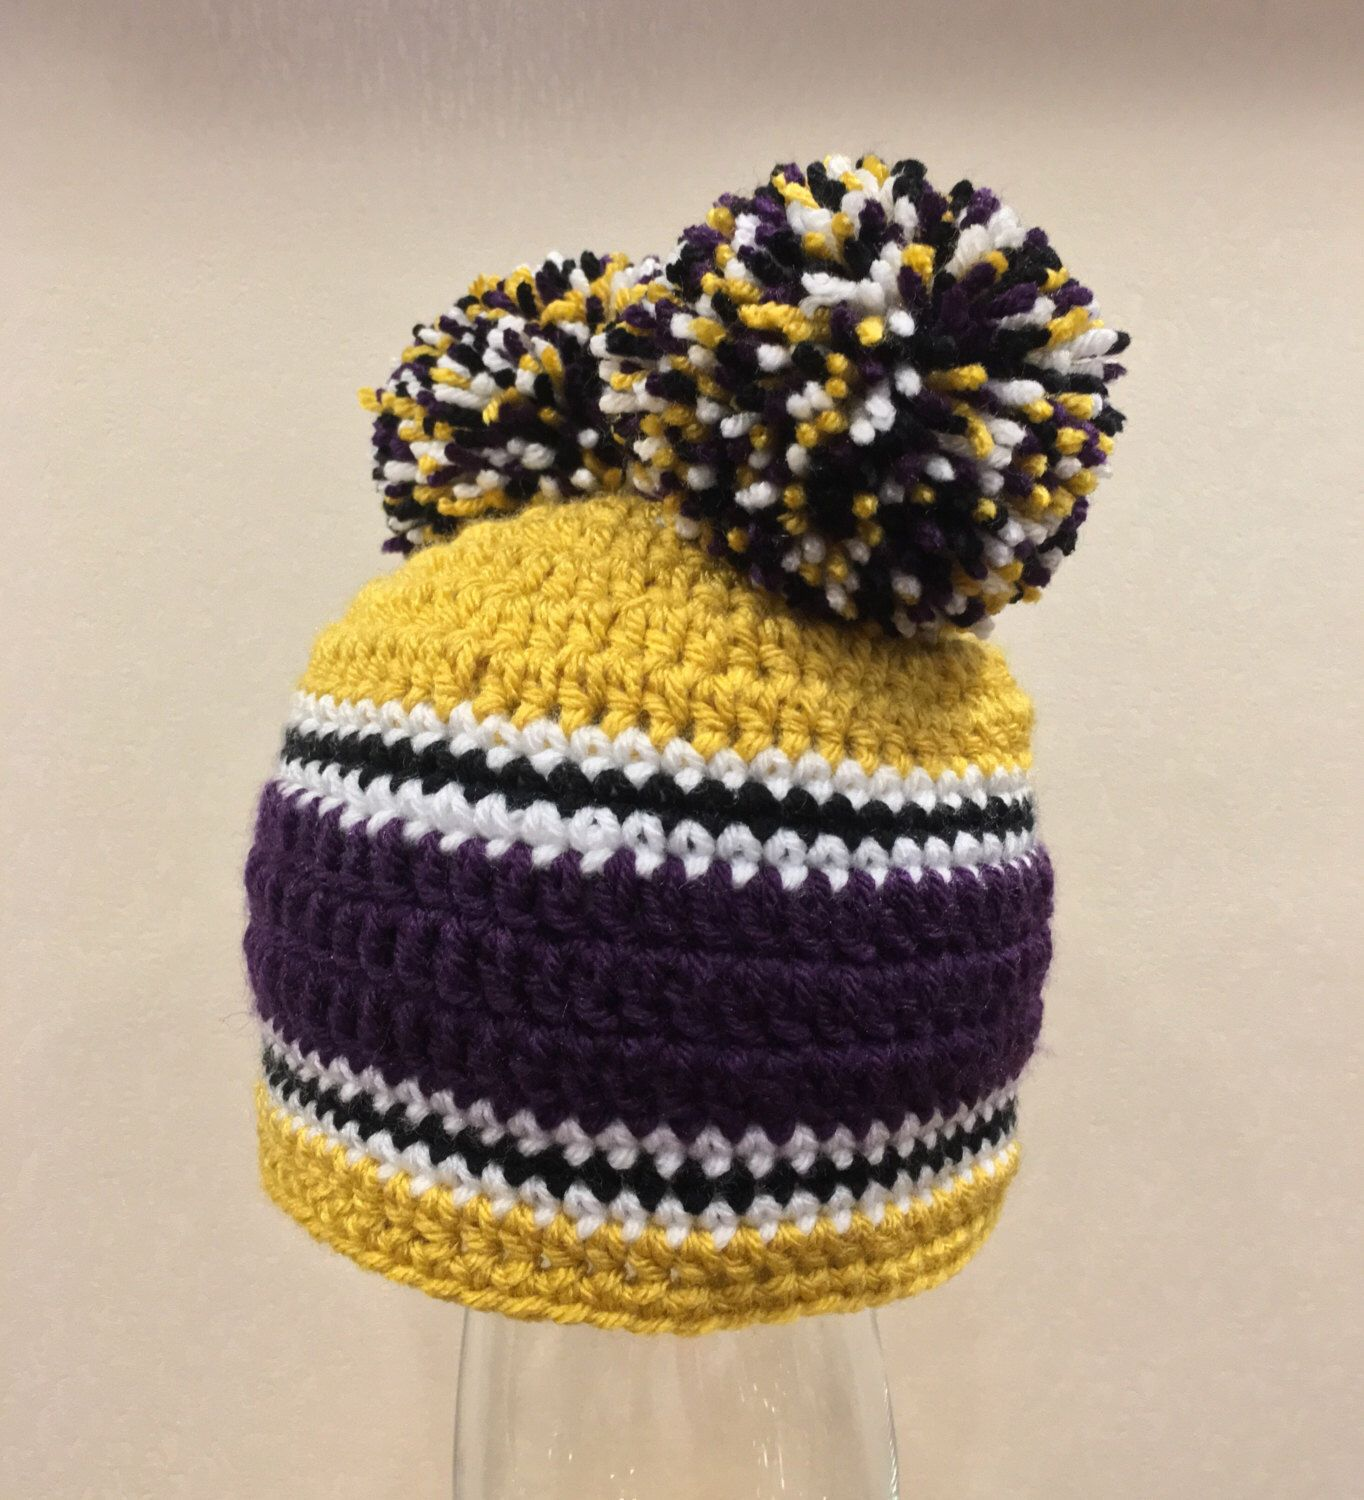 7189e21be50 A personal favorite from my Etsy shop  https   www.etsy.com listing 485094591 double-pompom-team-hat-free-shipping